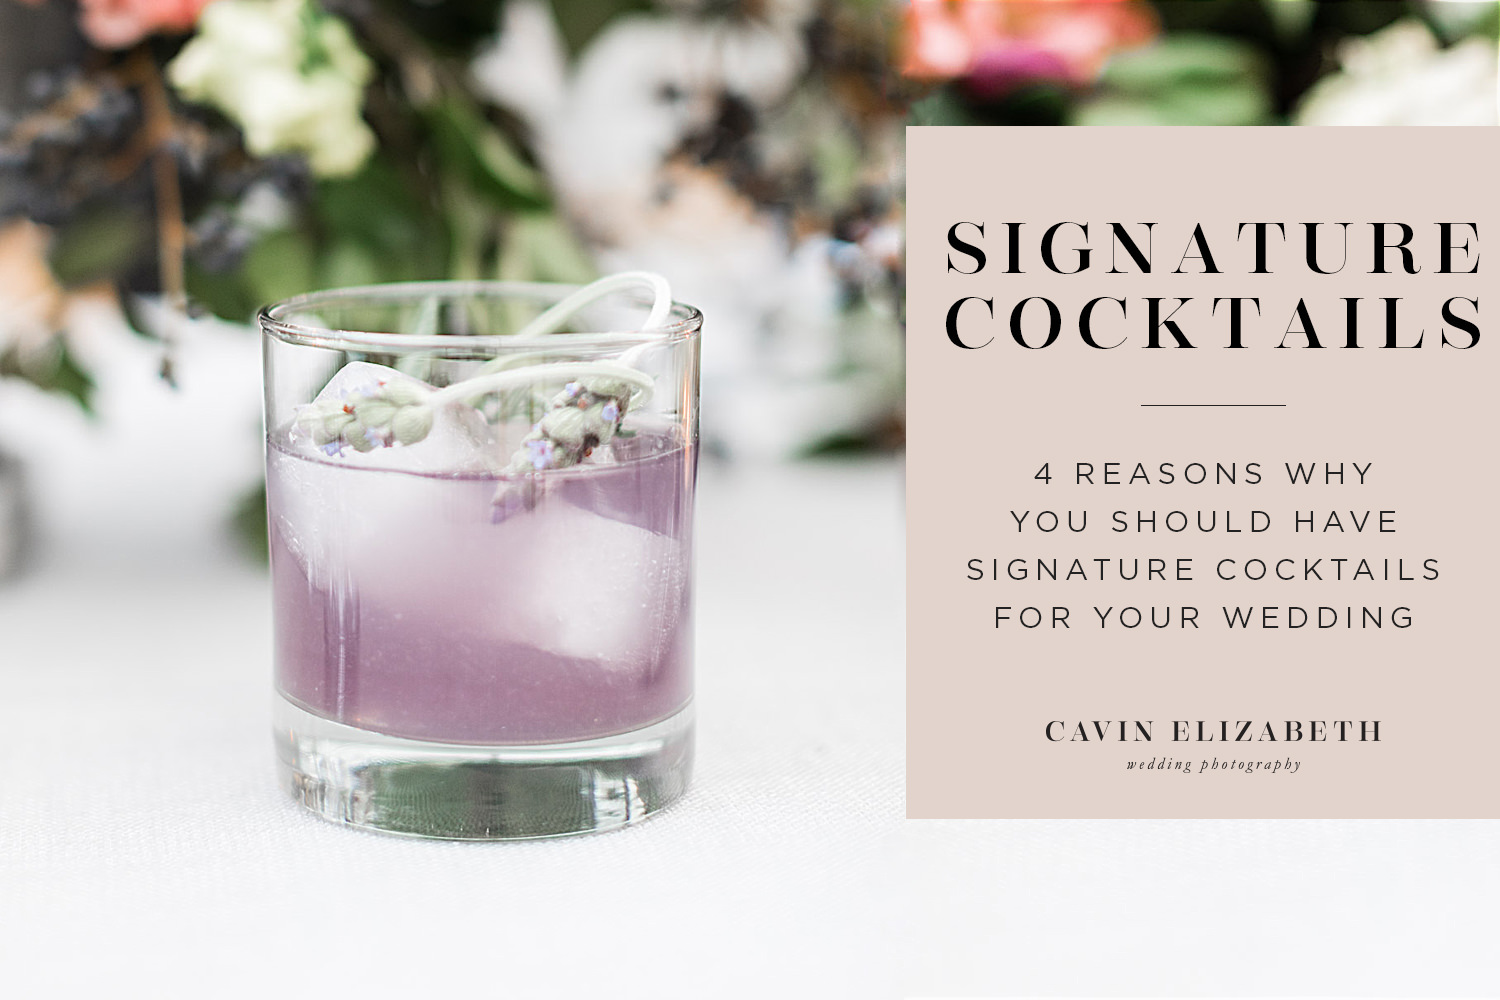 4 Reasons to Have Signature Cocktails at Your Wedding